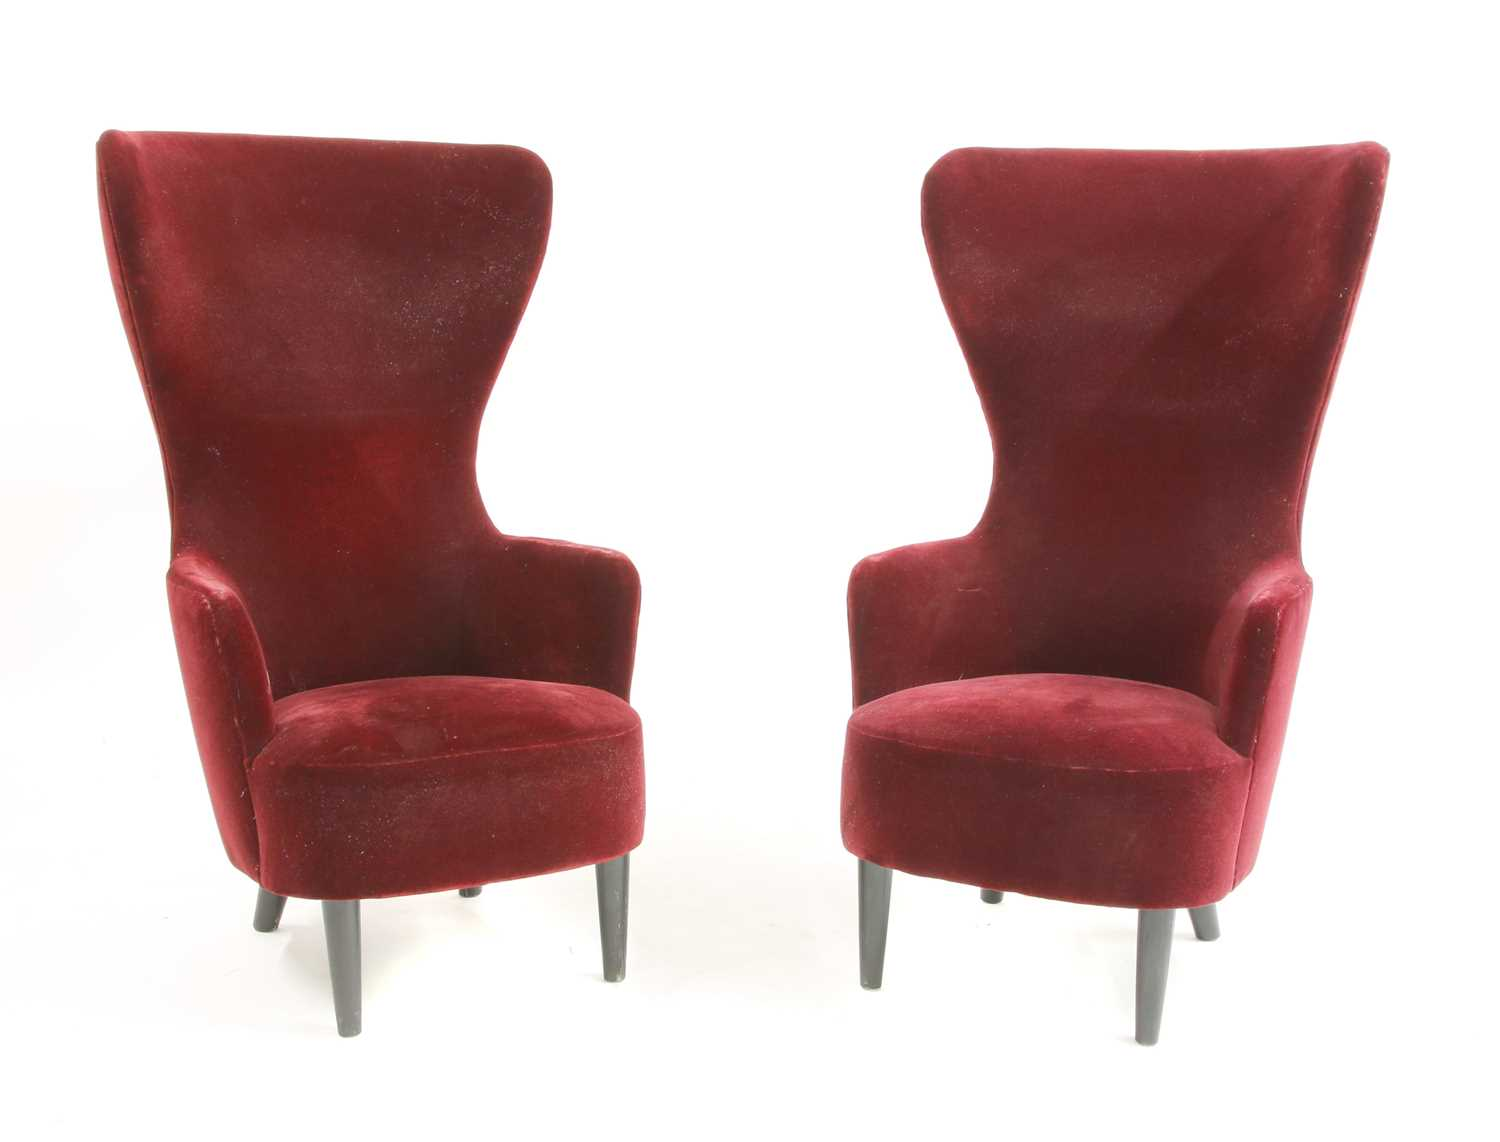 A pair of Tom Dixon 'Wingback' design chairs,